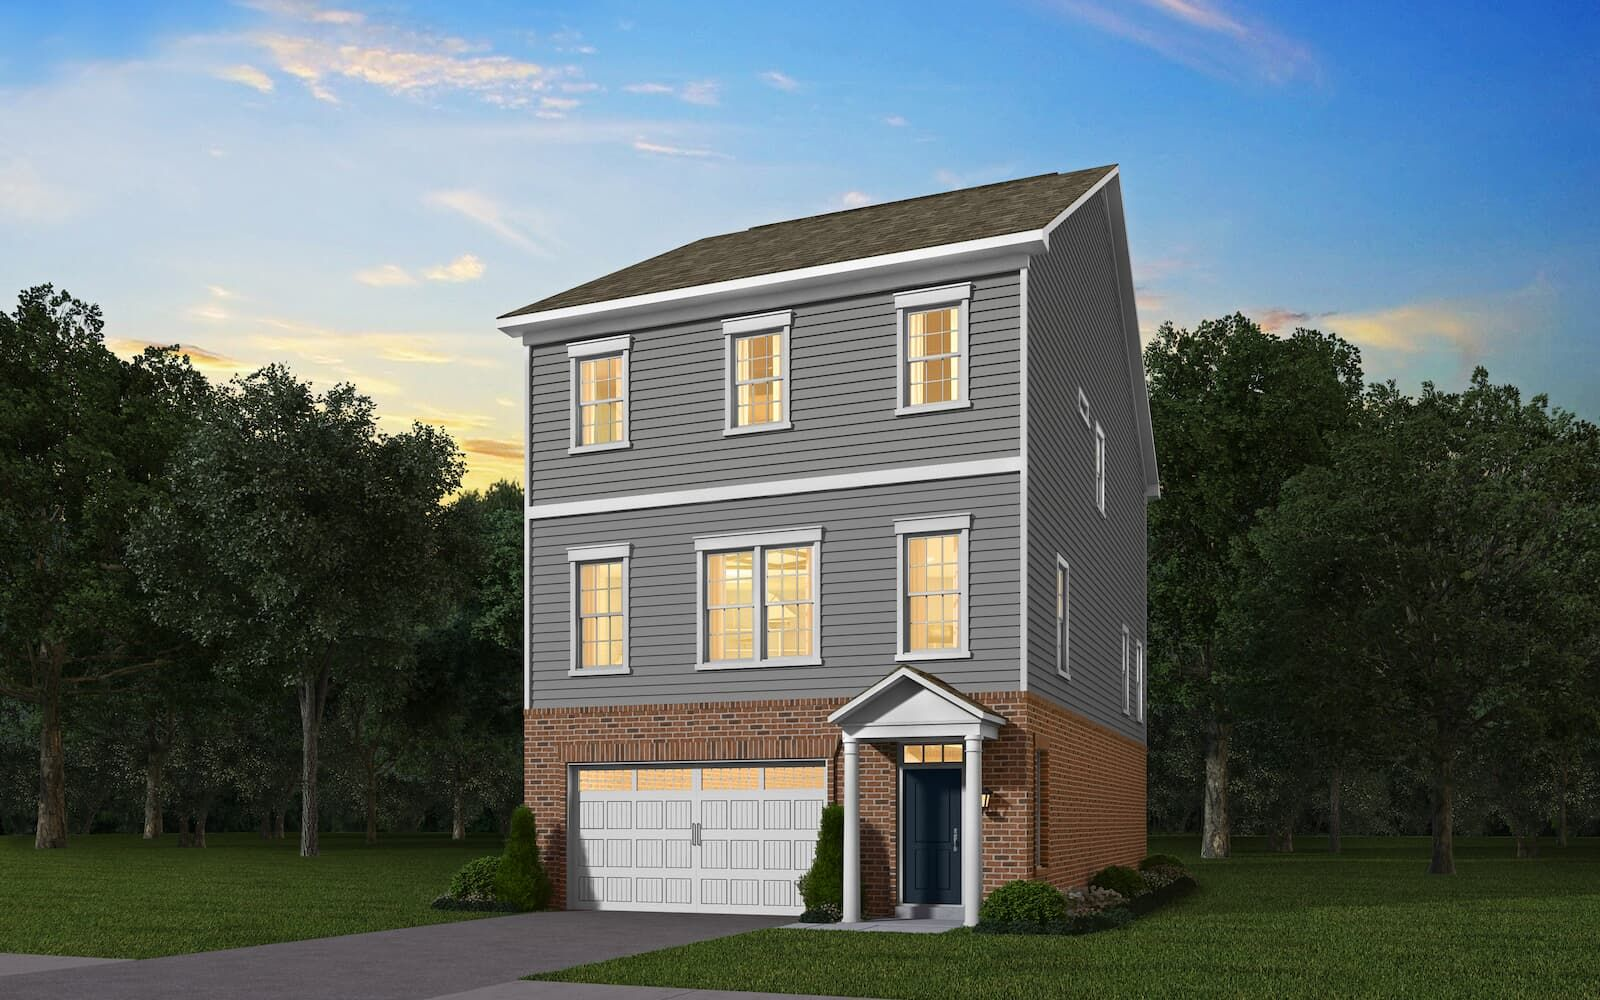 Exterior:Elevation 1 of the Prescott a home design by Brookfield Residential at Dowden s Station in Clarksburg MD